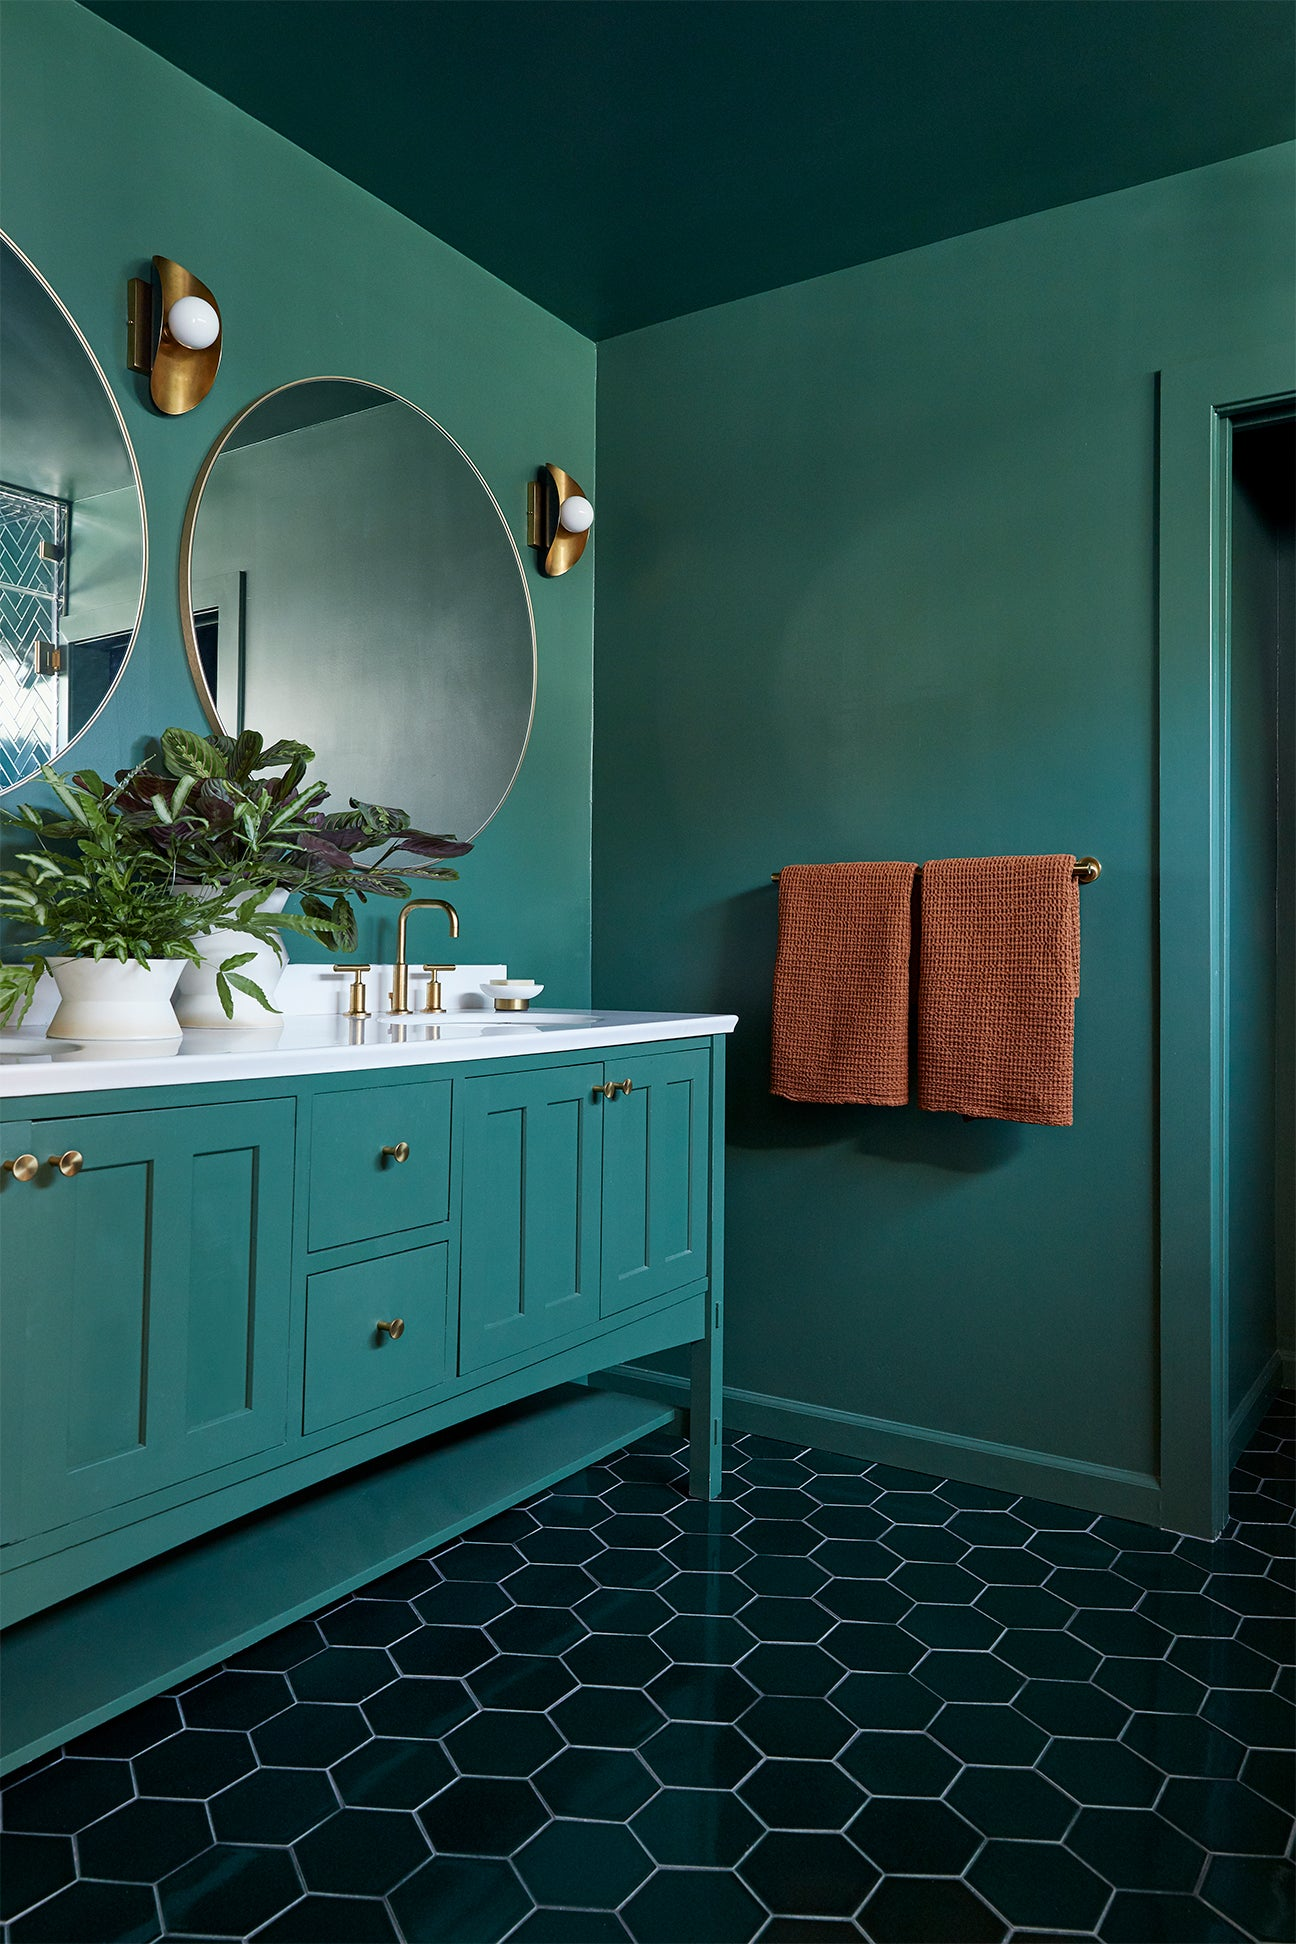 round mirror and a green vanity